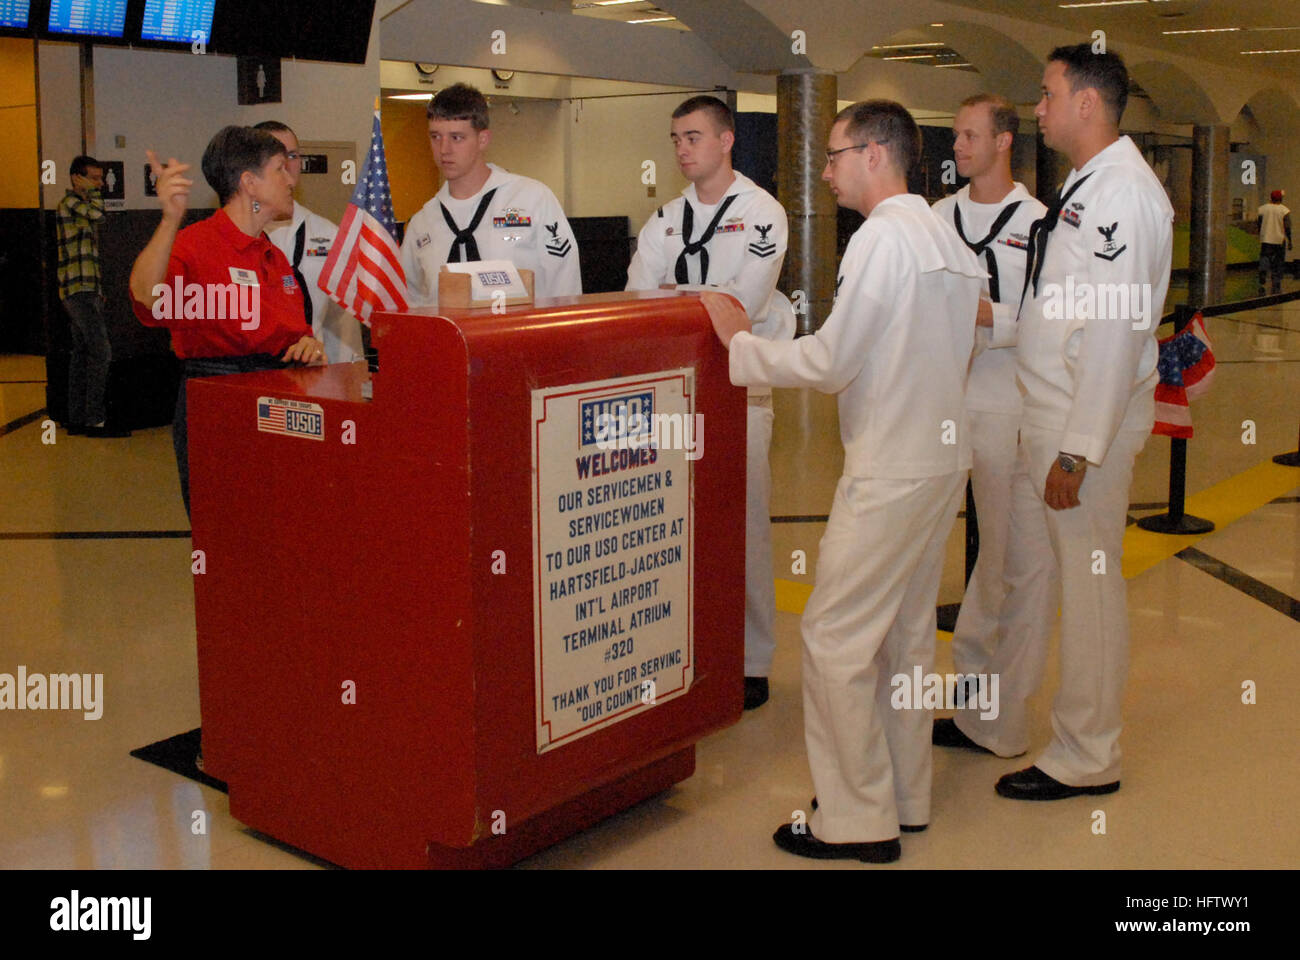 101012-N-6736S-006 ATLANTA (Oct. 12, 2010) USO volunteer Pat Horvath instructs Sailors from the guided-missile submarine - Stock Image